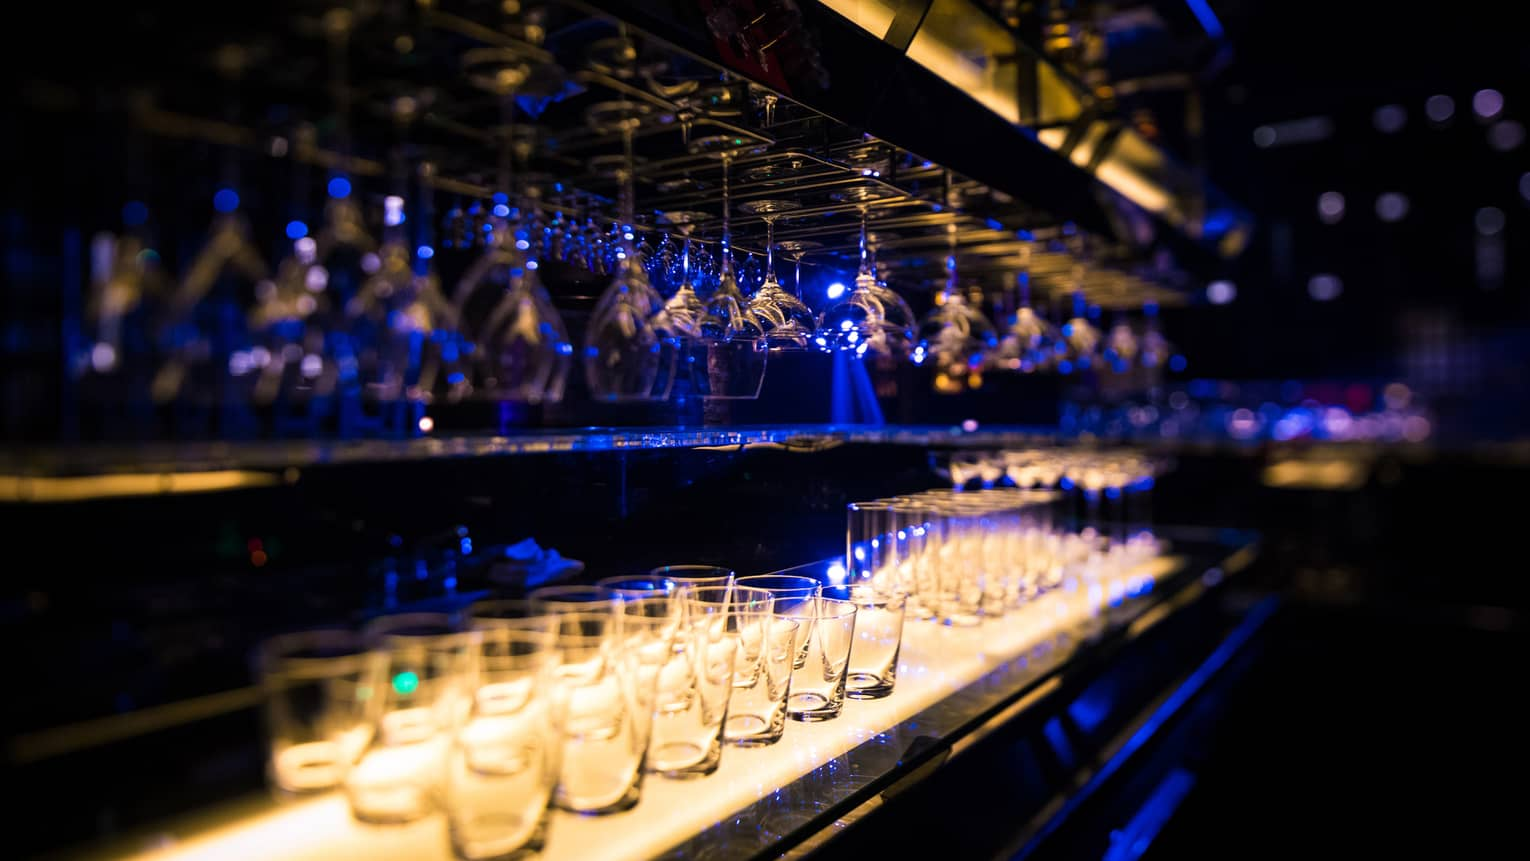 Rows of wine glasses hang over glasses on dark Equis bar with blue lights